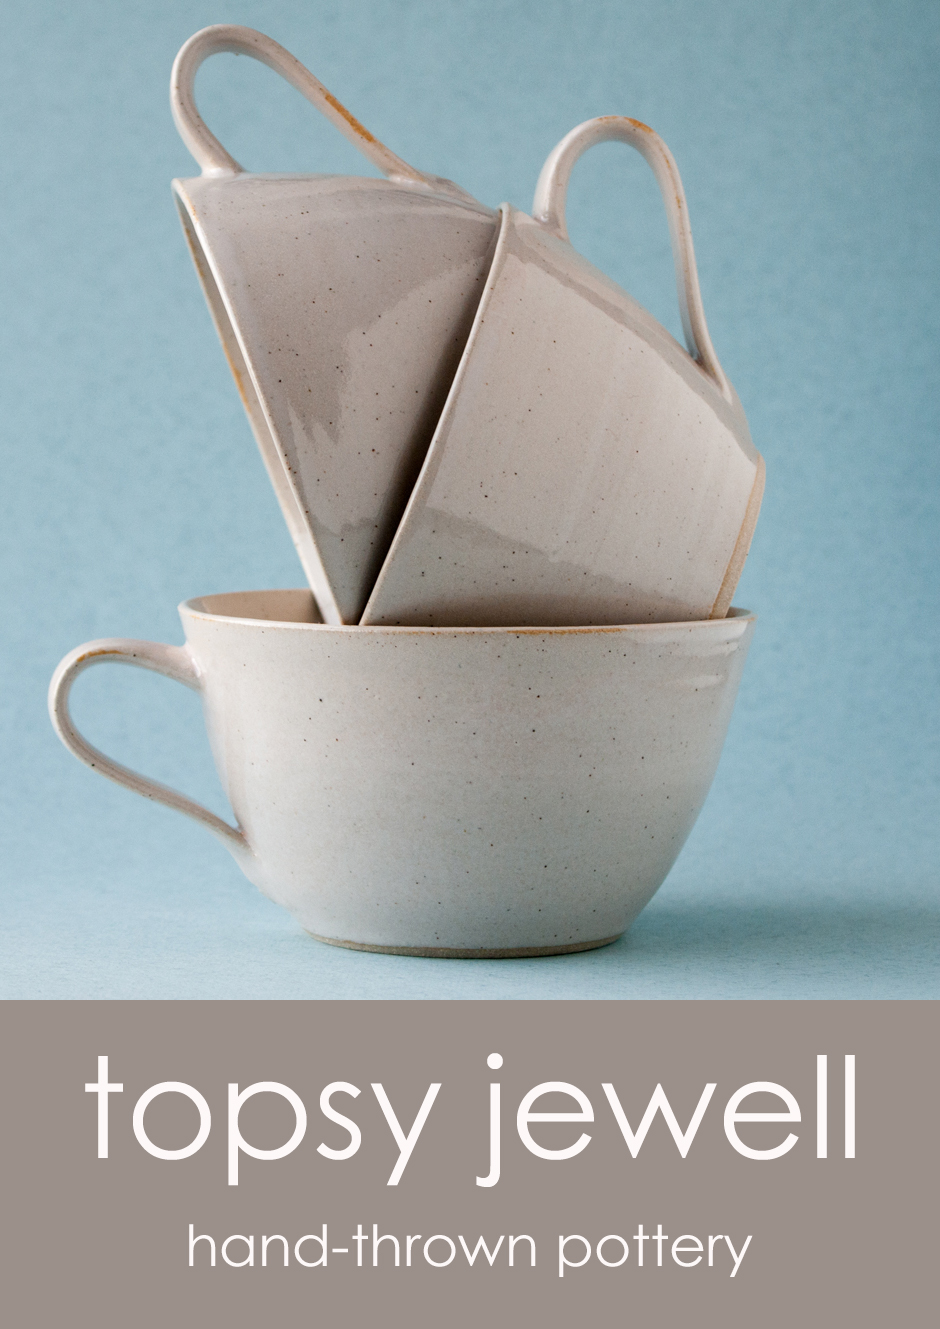 Topsy Jewell - Handthrown Potter.jpg